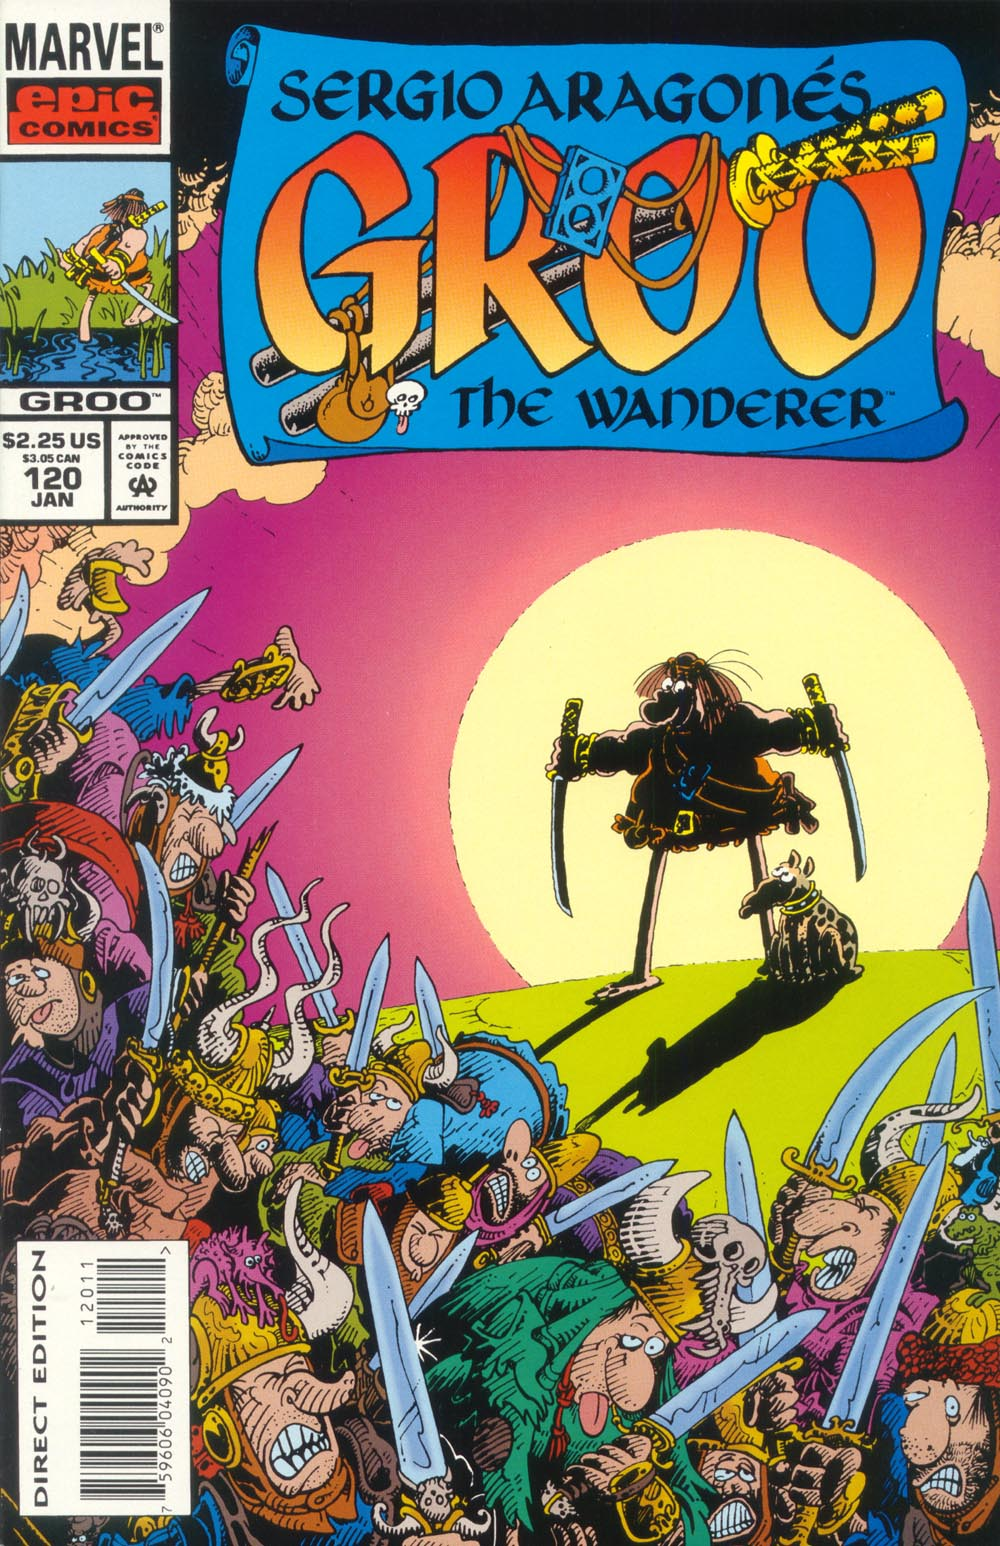 Read online Sergio Aragonés Groo the Wanderer comic -  Issue #120 - 1